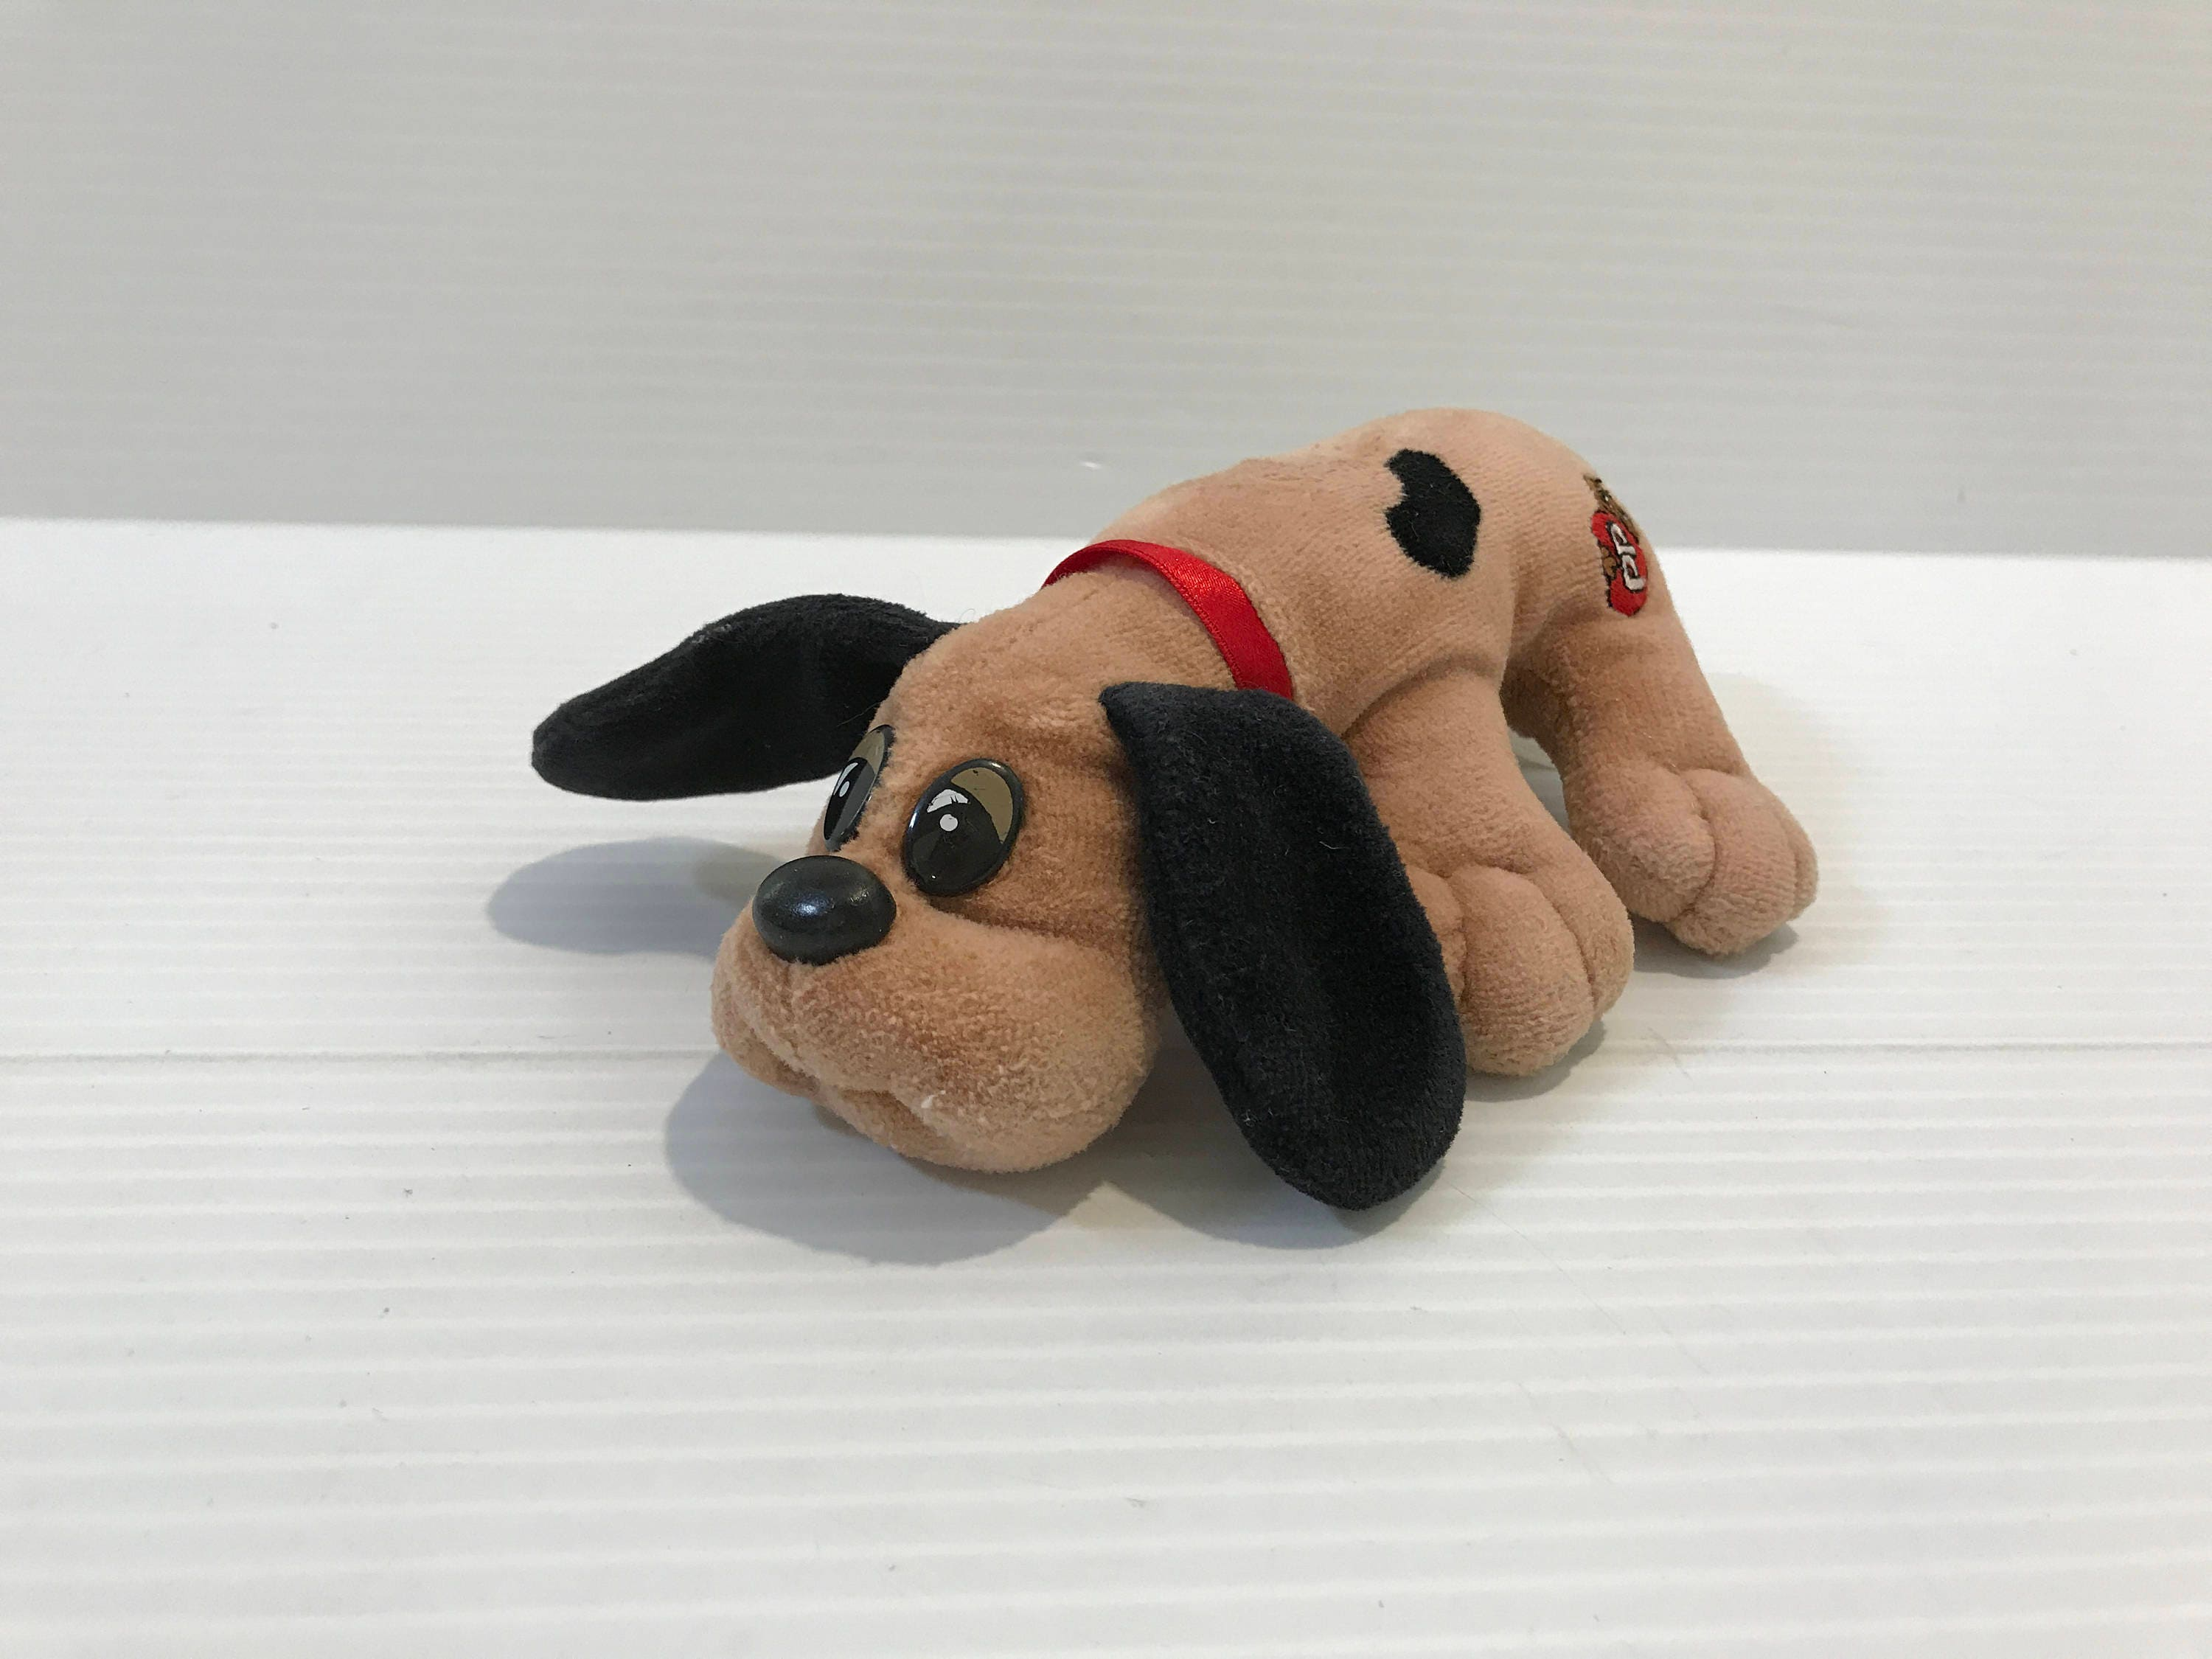 POUND PUPPY stuffed animal Vintage Stuffed Plush Brown with